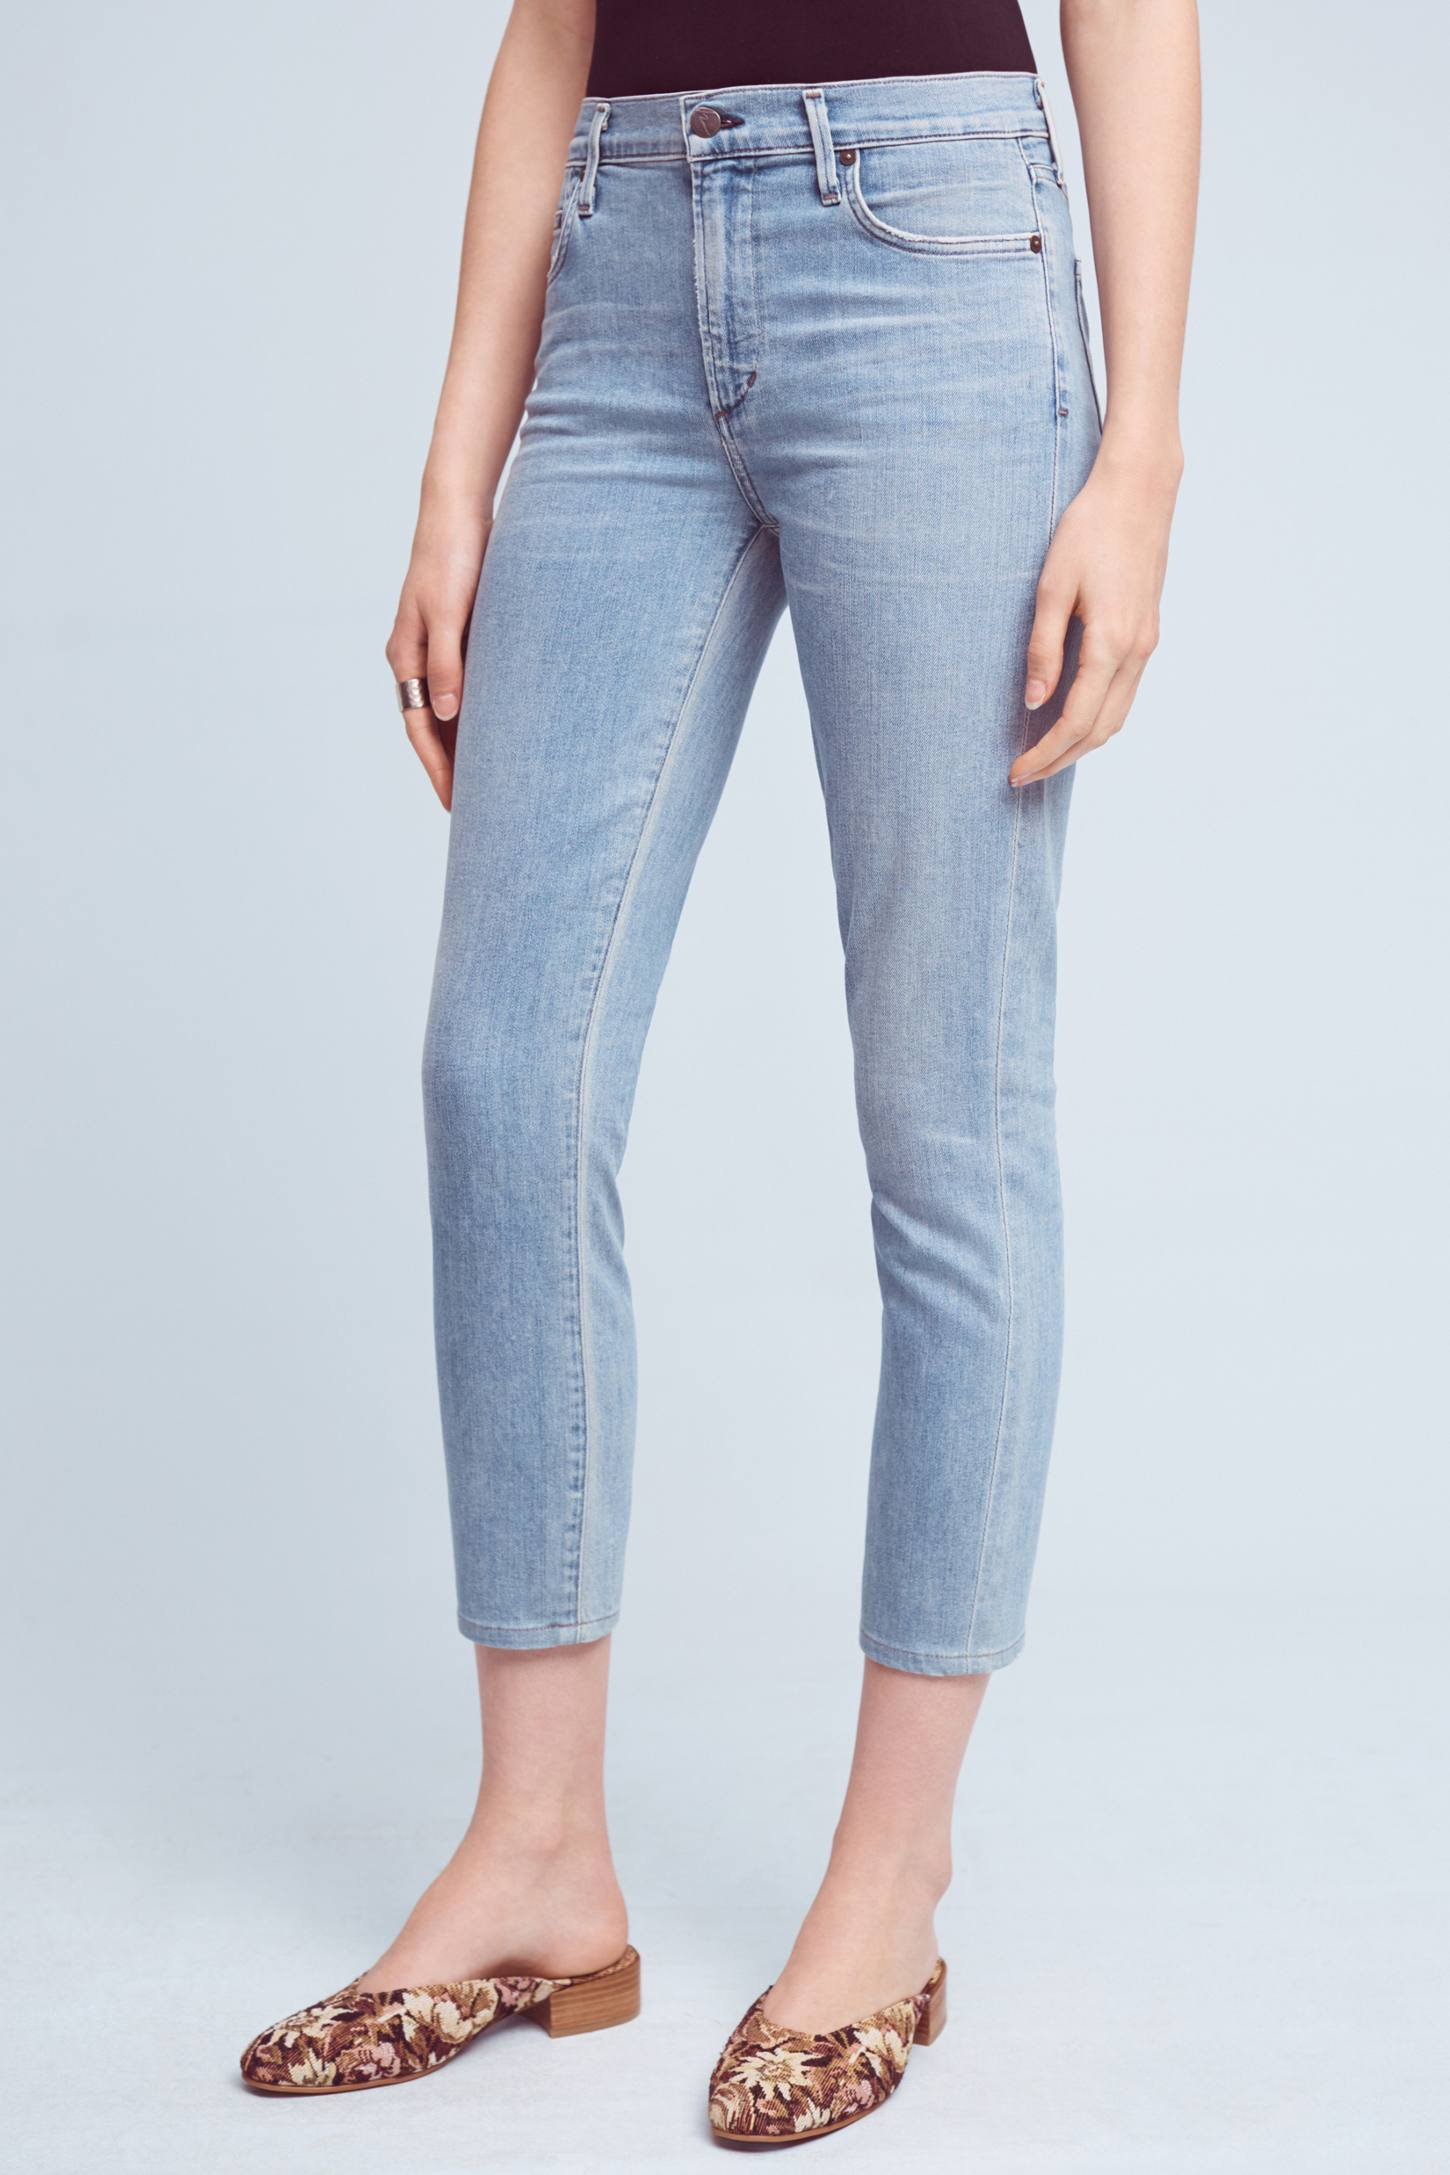 Slide View: 2: Citizens of Humanity Rocket High-Rise Skinny Cropped Jeans